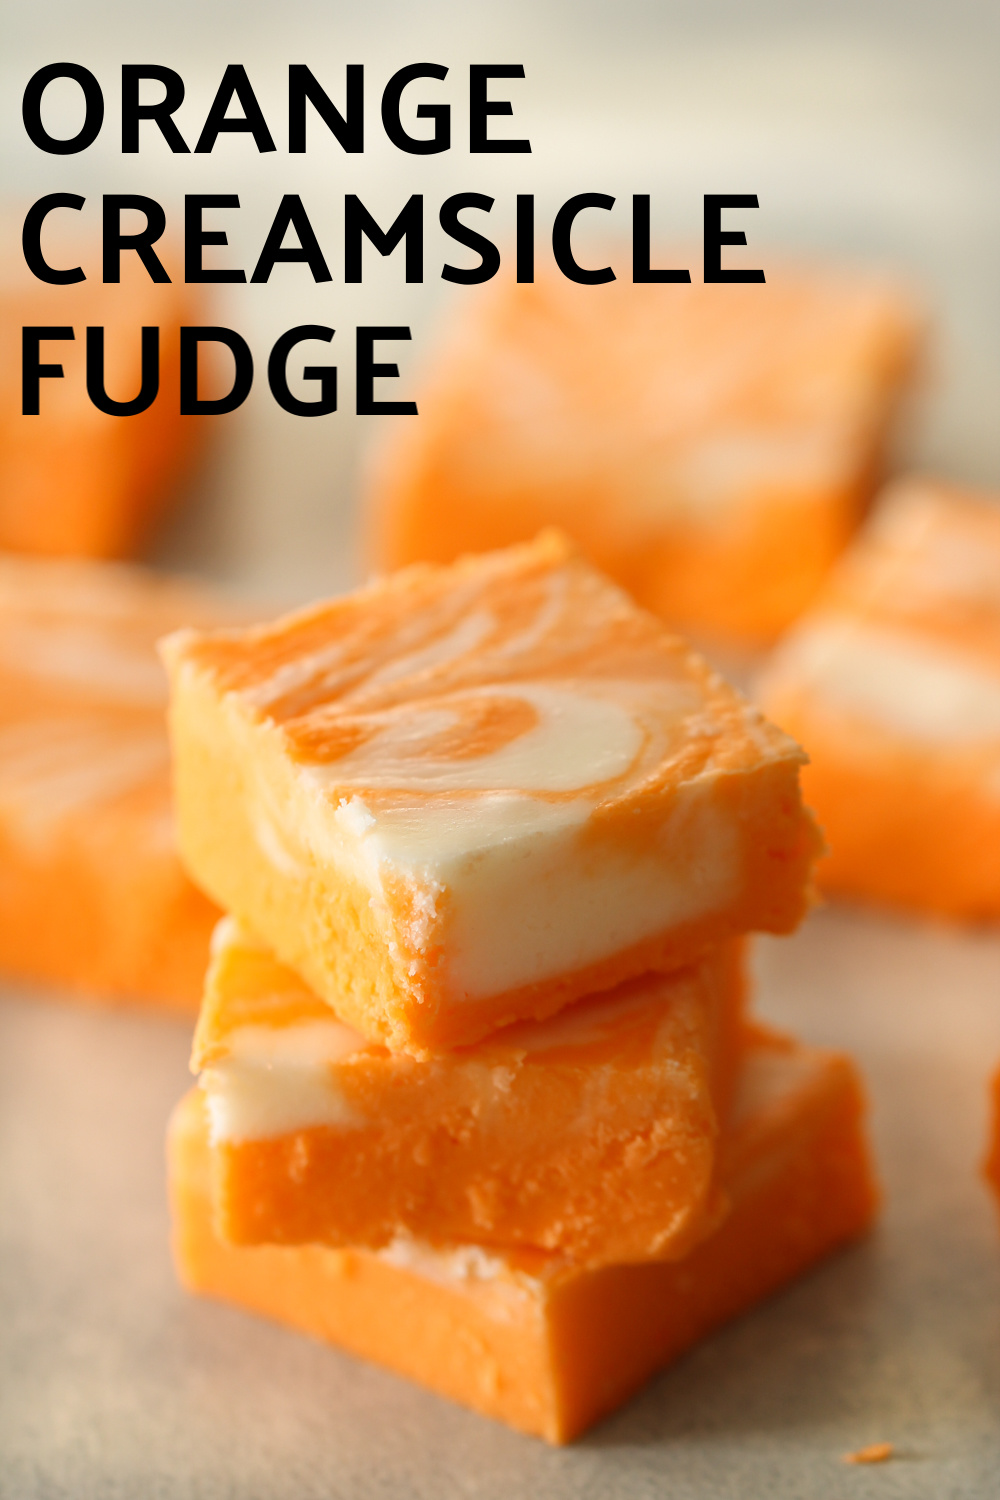 Stacked fudge with title of recipe